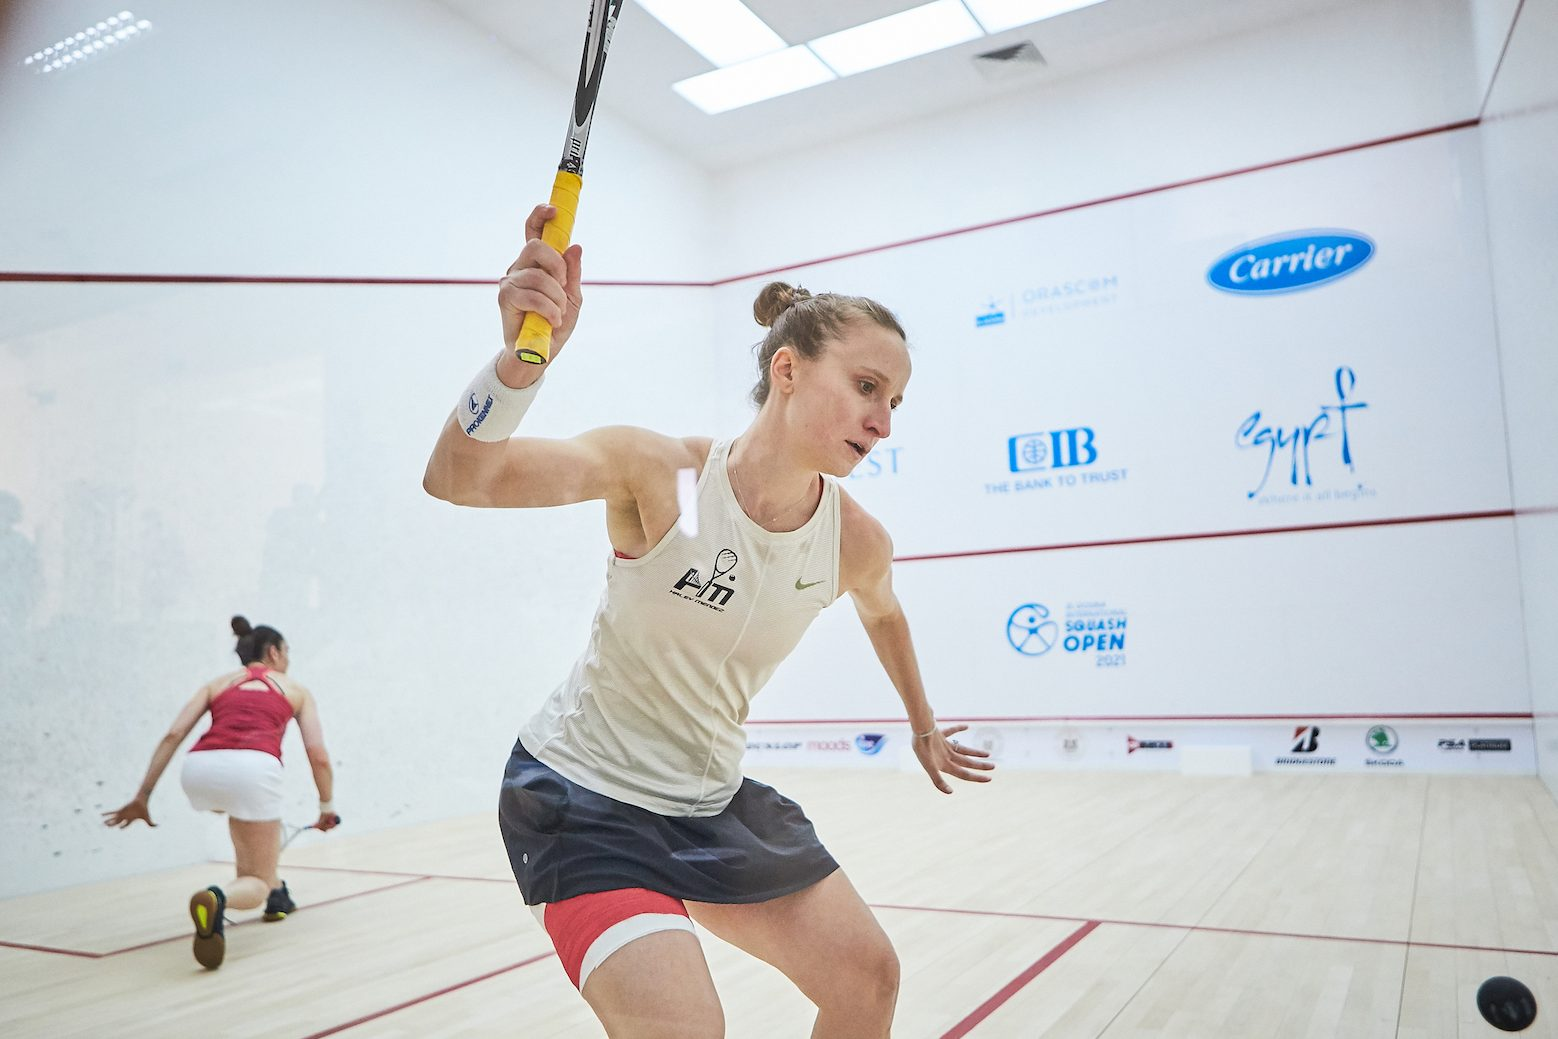 The USA's Haley Mendez will participate in Women's Squash Week.